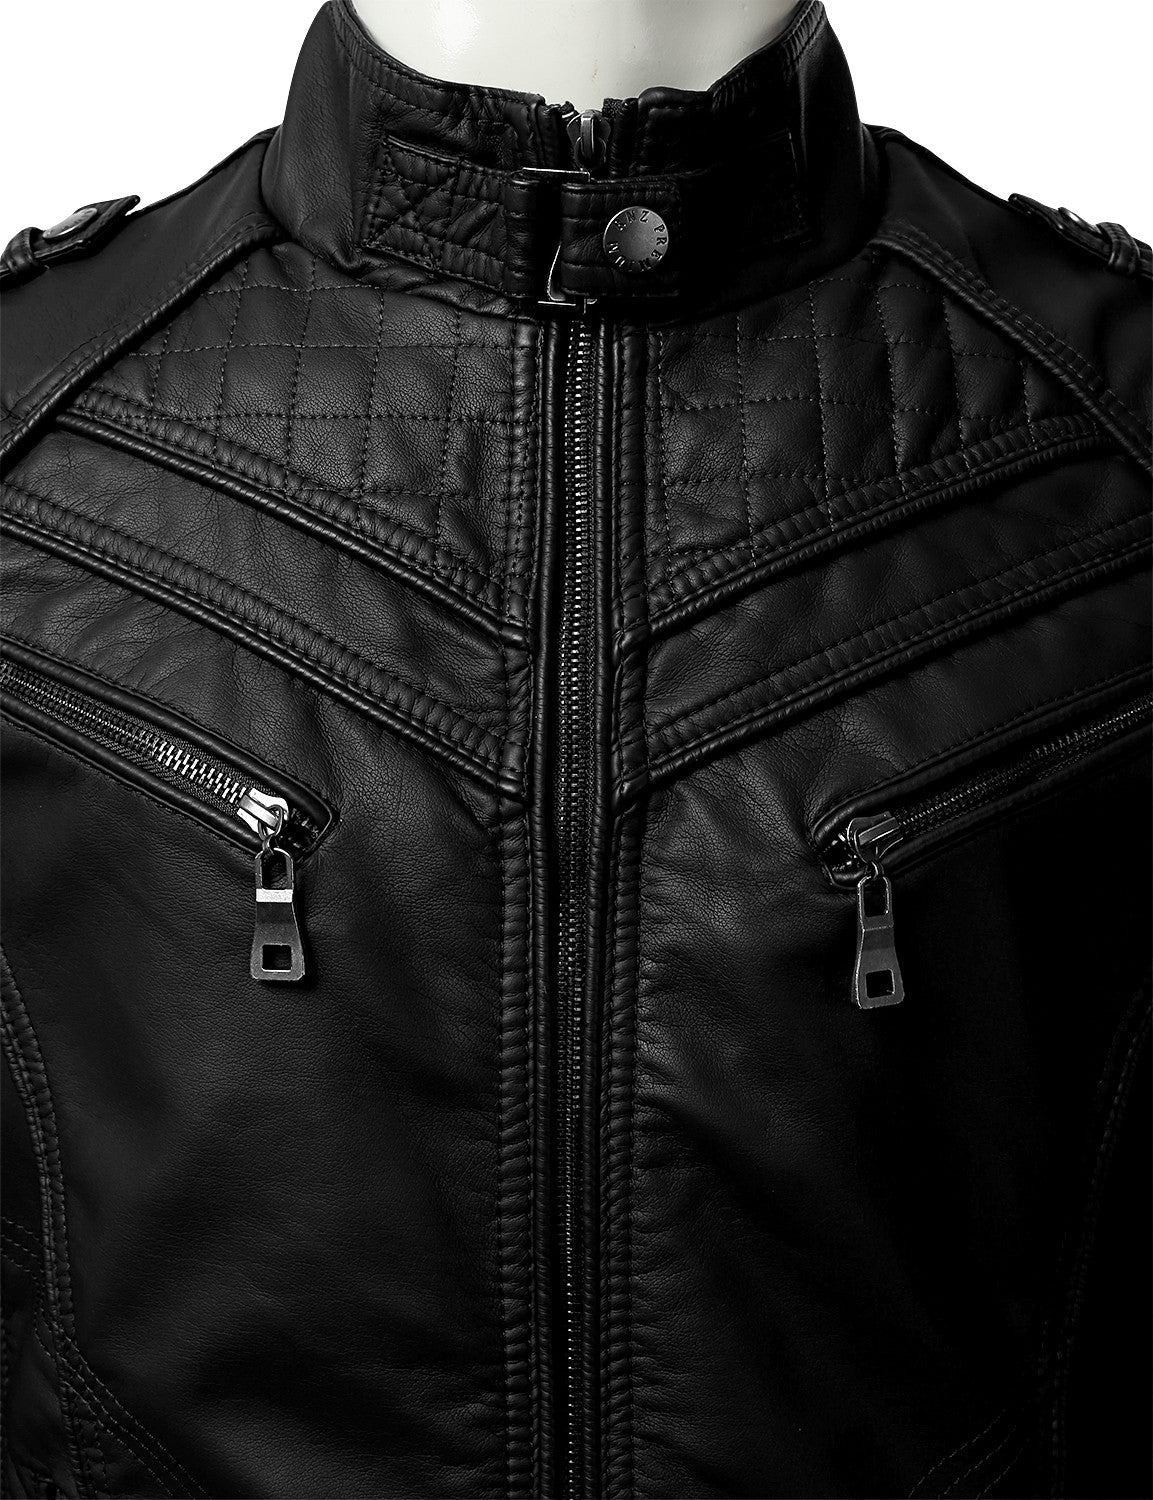 BLACK PU Leather Zippered Jacket - URBANCREWS